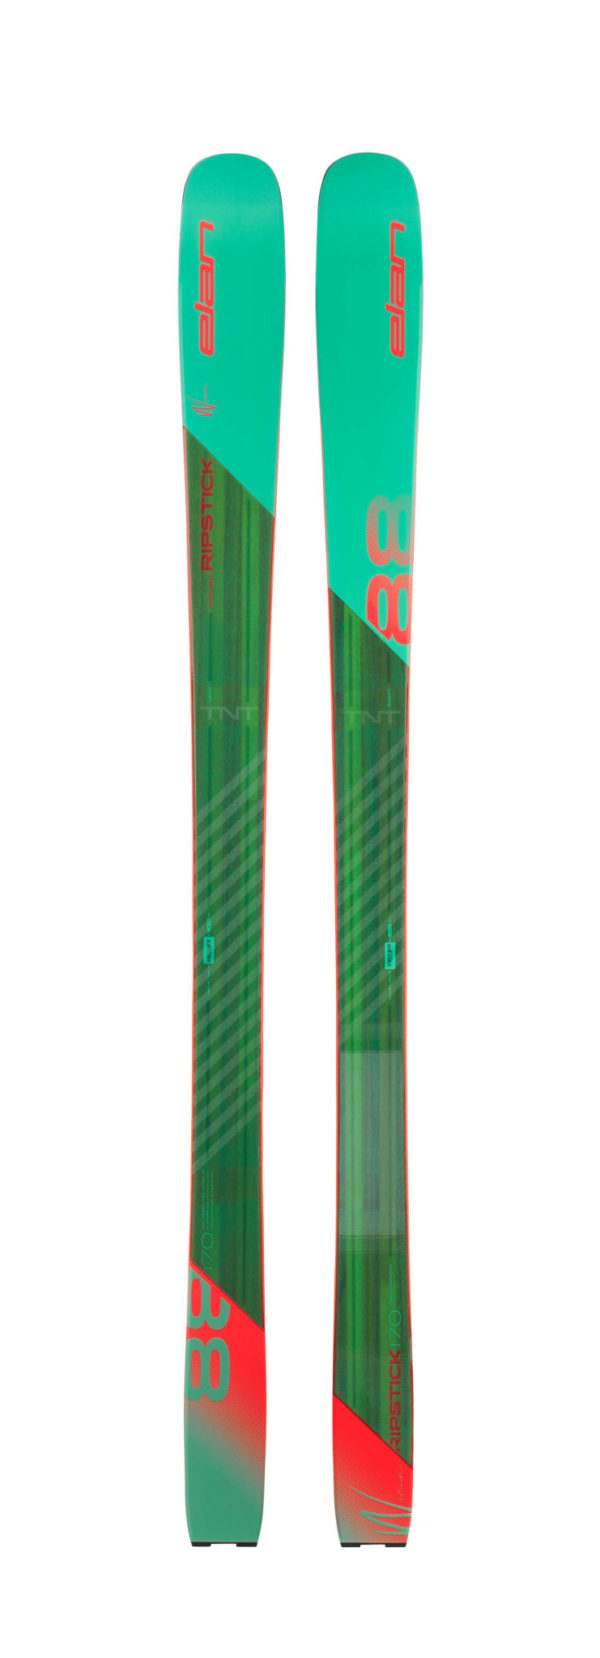 Elan Ripstick 88W Women's Skis (Flat) 2019-20 at Northern Ski Works